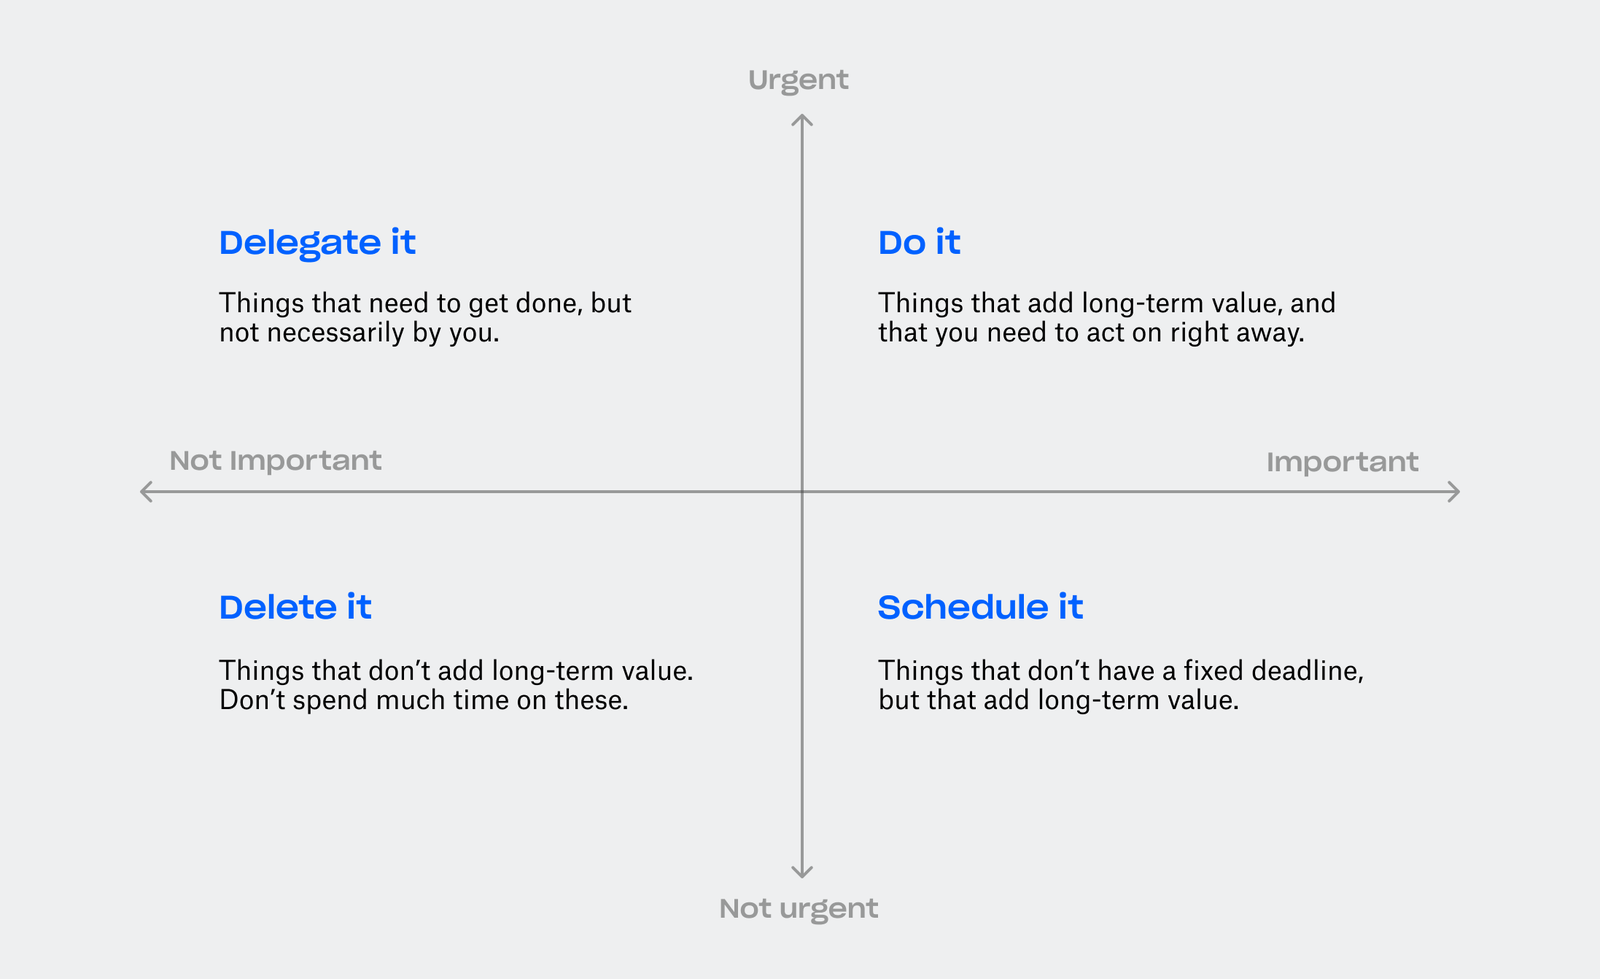 "An axis grid with the X axis labeled ""Not important"" to ""important"" and the Y axis labeled ""Not urgent"" to ""Urgent."" In the ""not important"" but ""urgent"" quadrant there is text"" Delegate it: Things that need to get done, but not necessarily by you. In the ""Not important"" but ""not urgent"" quadrant is the text ""Delete it: Things that don't add long-term value. Don't spend much time on these."" In the ""Important"" but ""Not urgent"" quadrant is the text, ""Schedule it: Things that don't have a fixed deadline, but that add long-term value."" Finally in the ""Important"" and ""Urgent"" quadrant is the text, ""Do it: Things that add long-term value, and that you need to act on right away."""